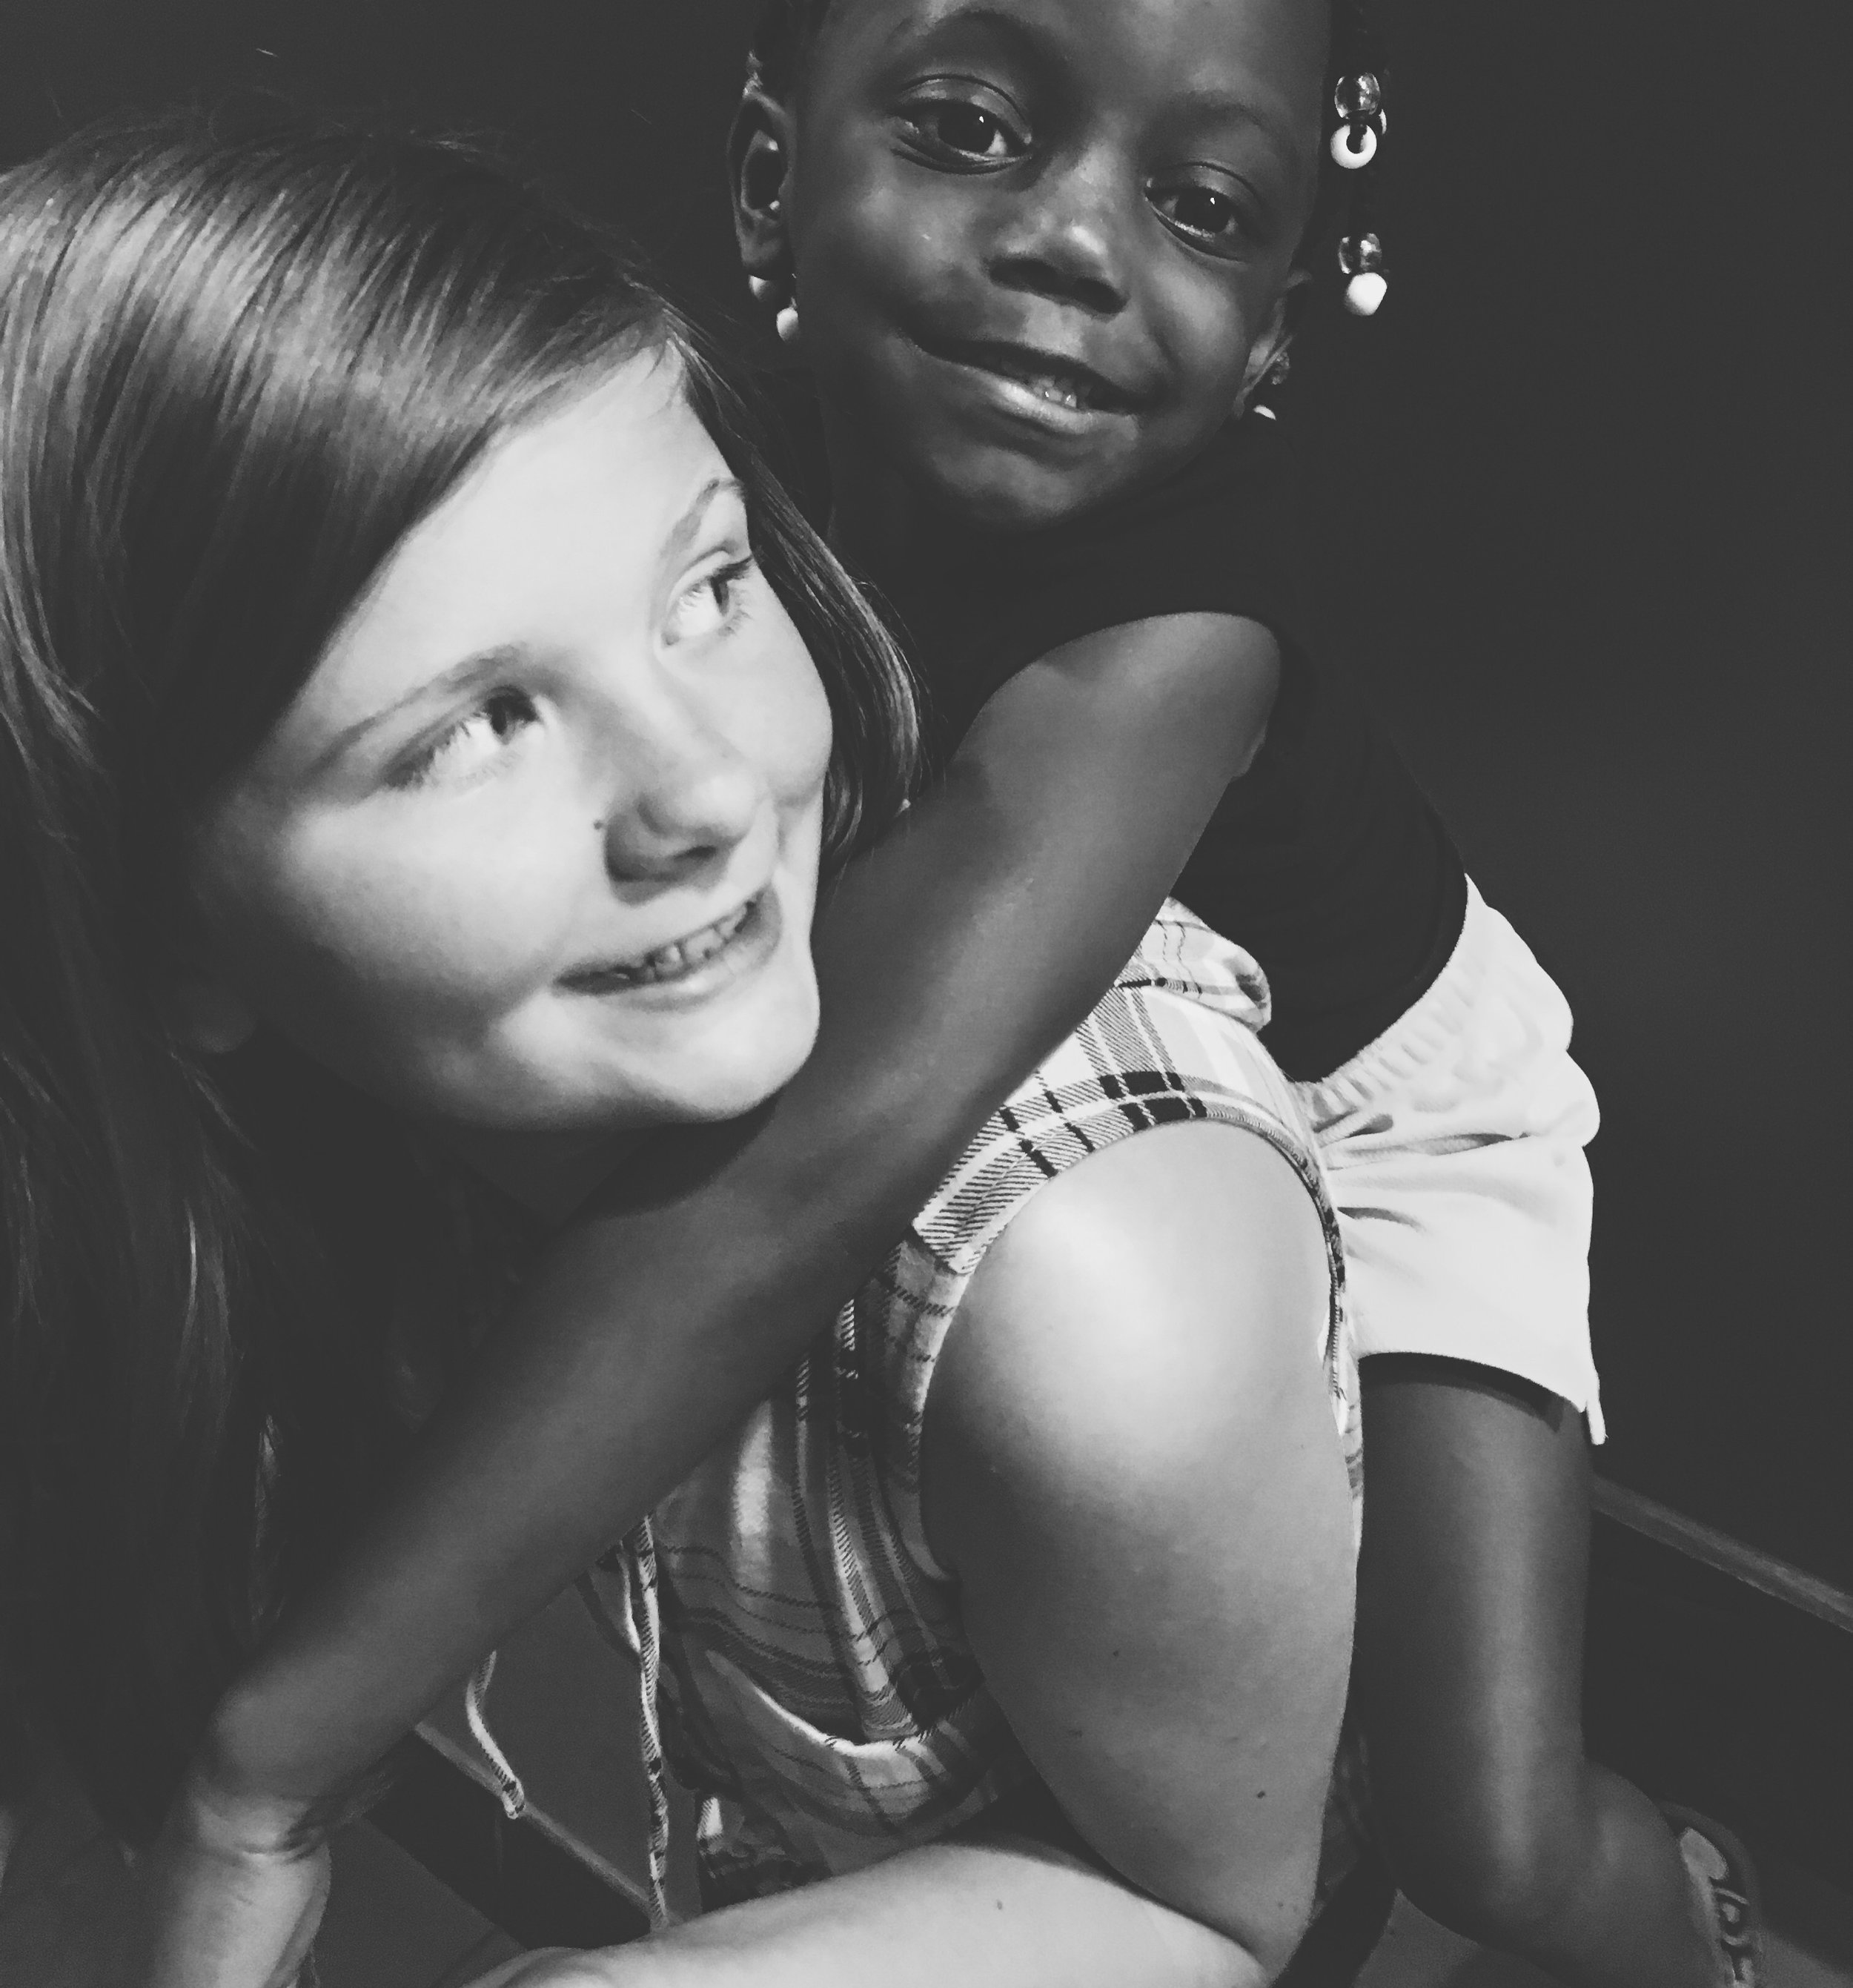 Cousins joined through foster care & adoption.